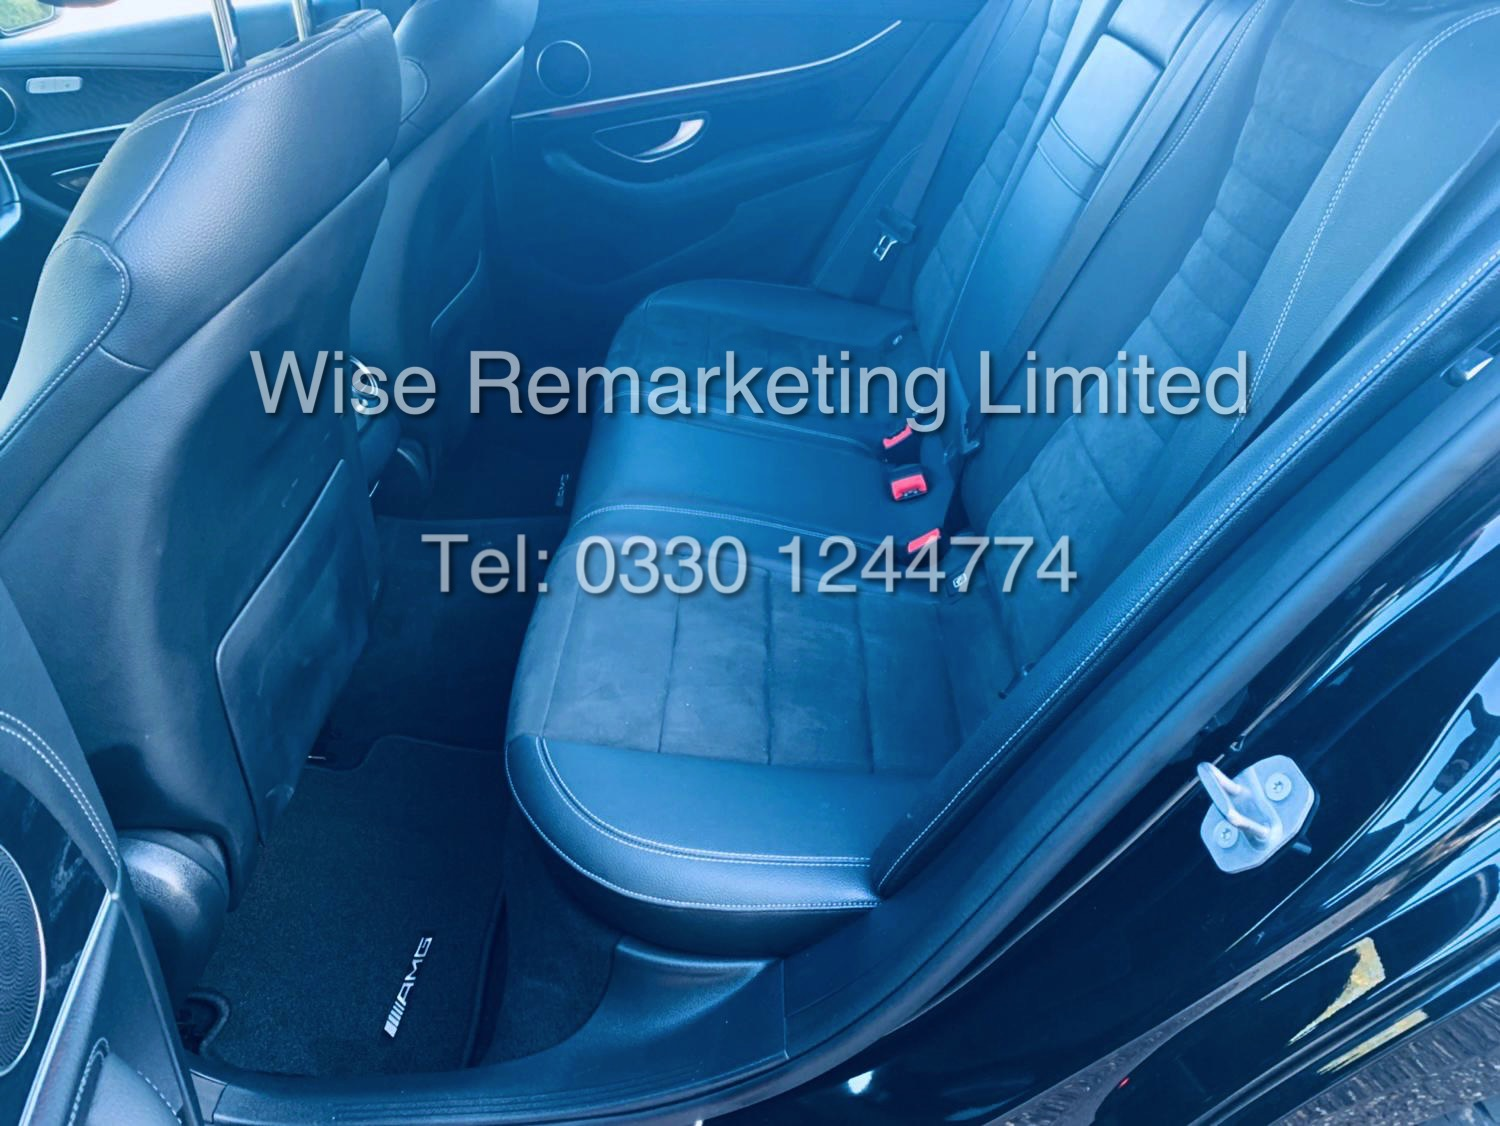 MERCEDES E CLASS ESTATE E220D AMG LINE 2017 / 9G -TRONIC / *LOW MILES* / 1 OWNER - Image 34 of 42